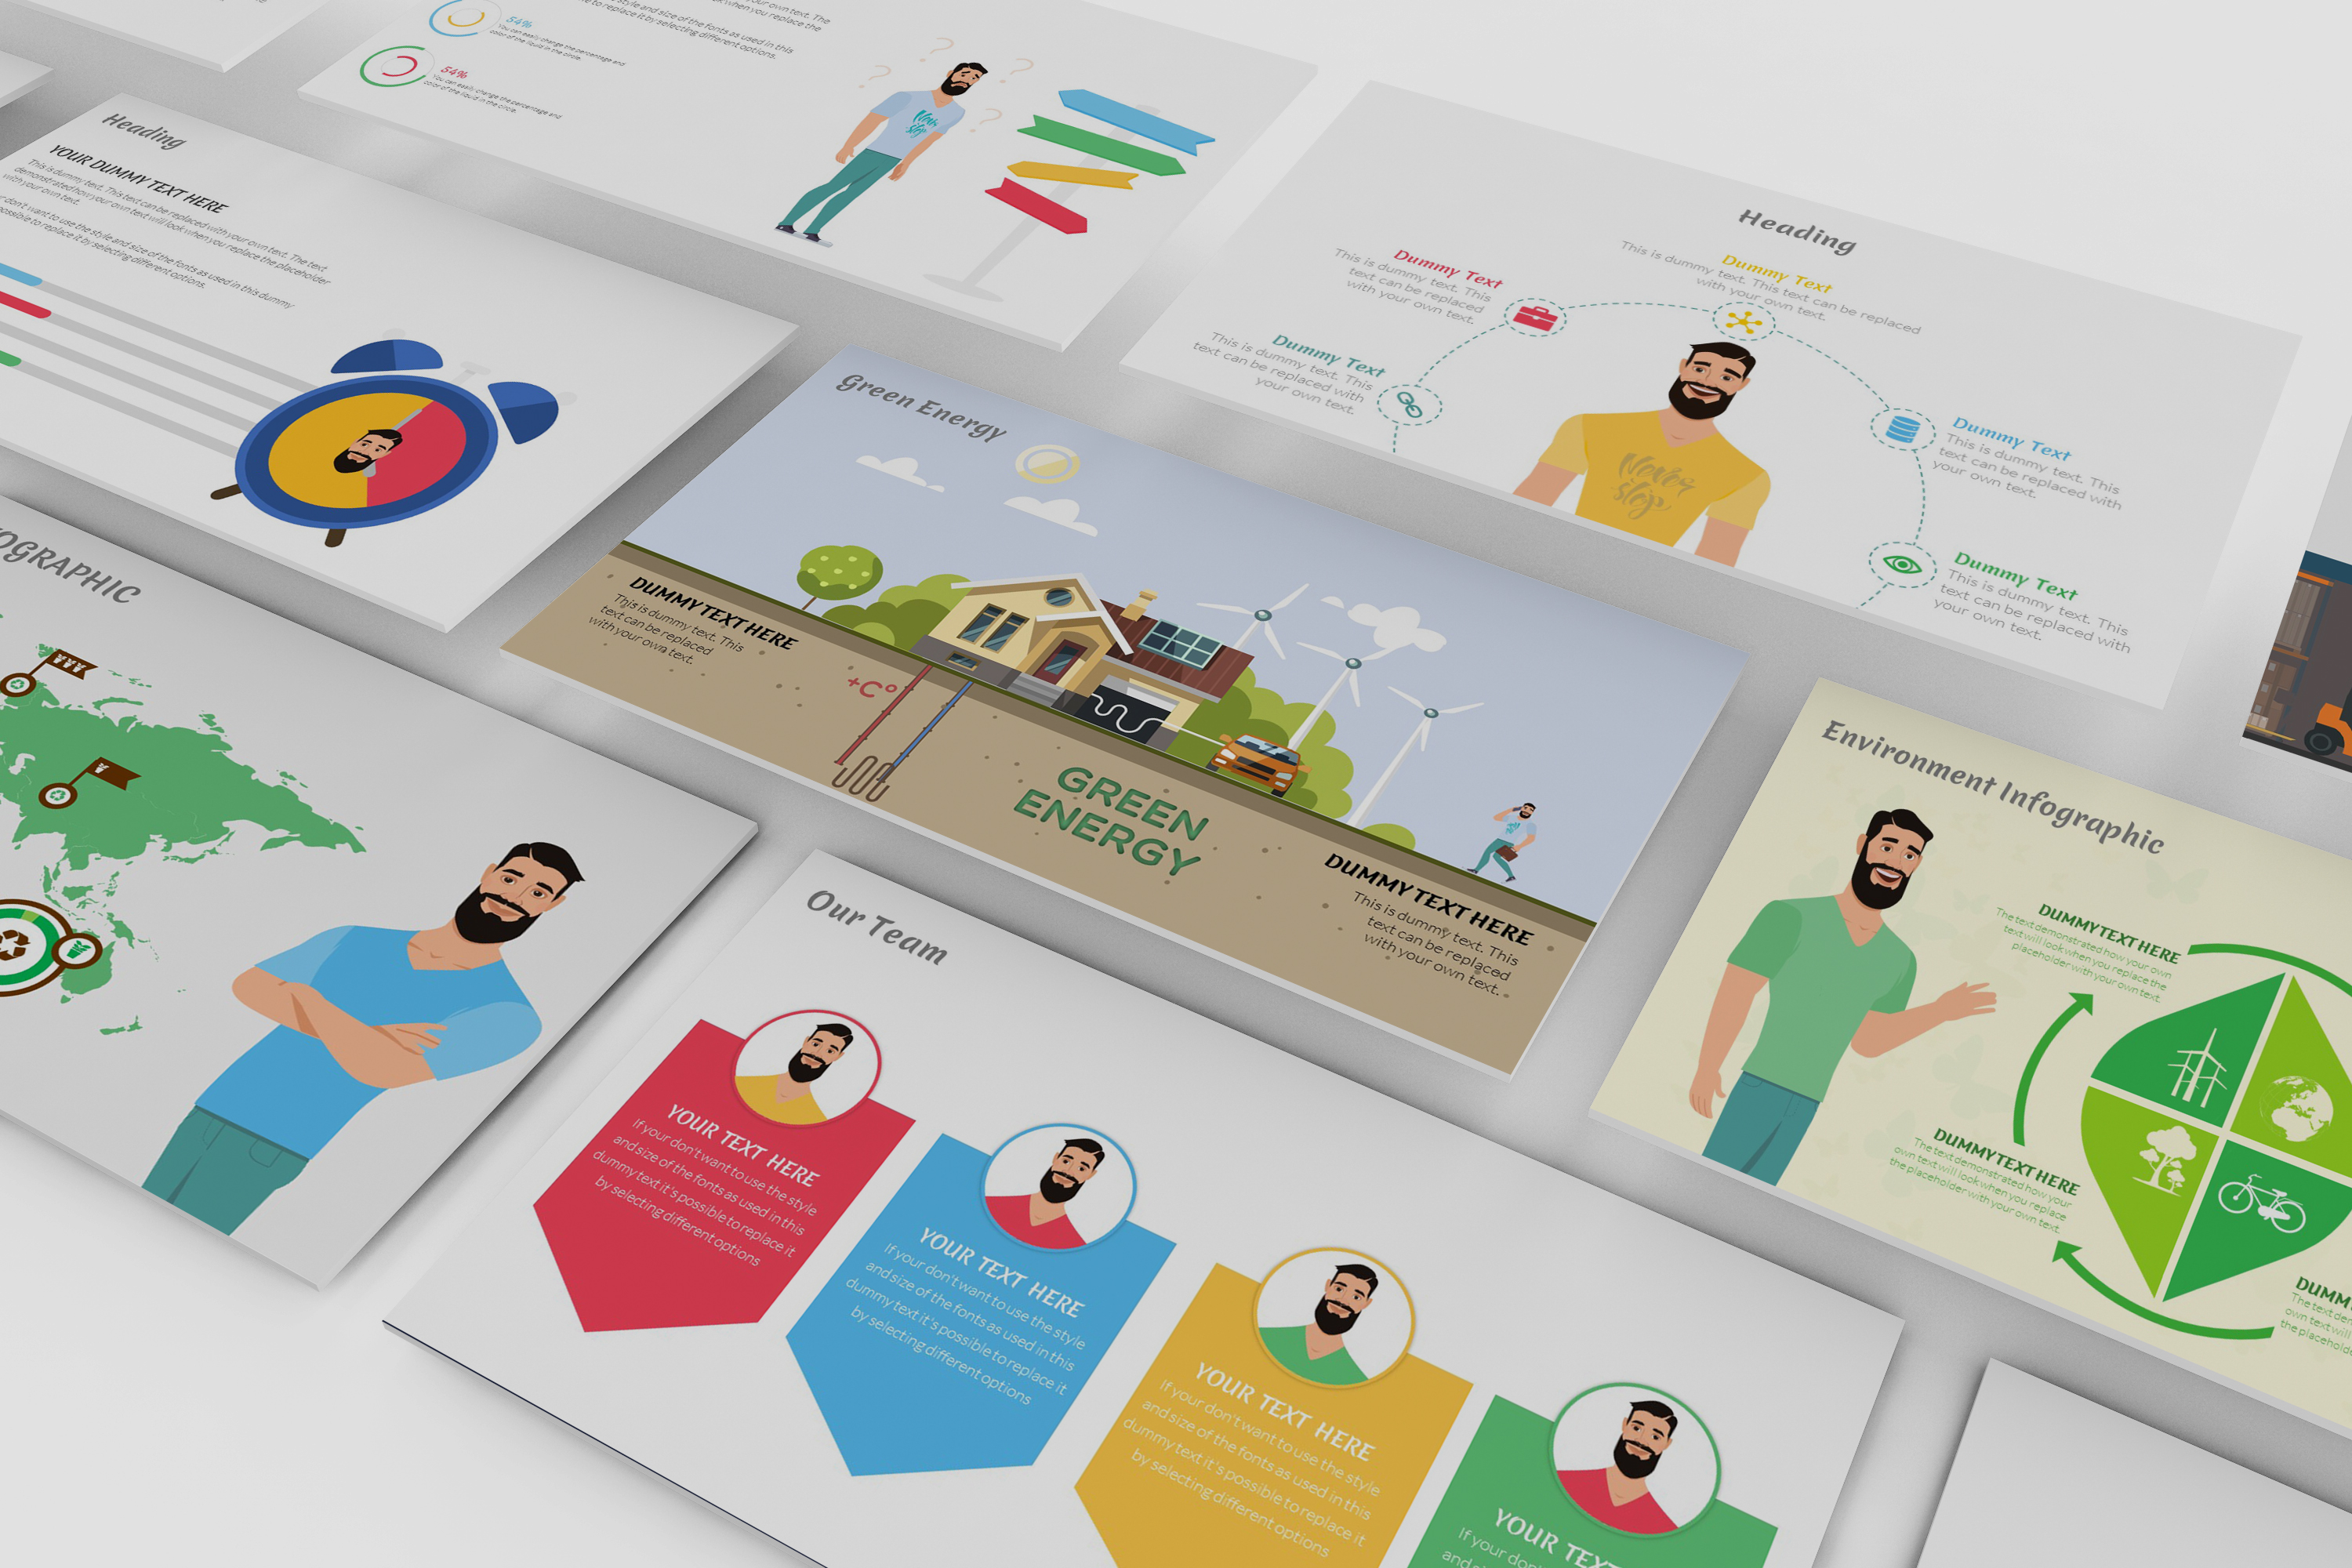 E-Trainer PowerPoint Template 1 example image 2